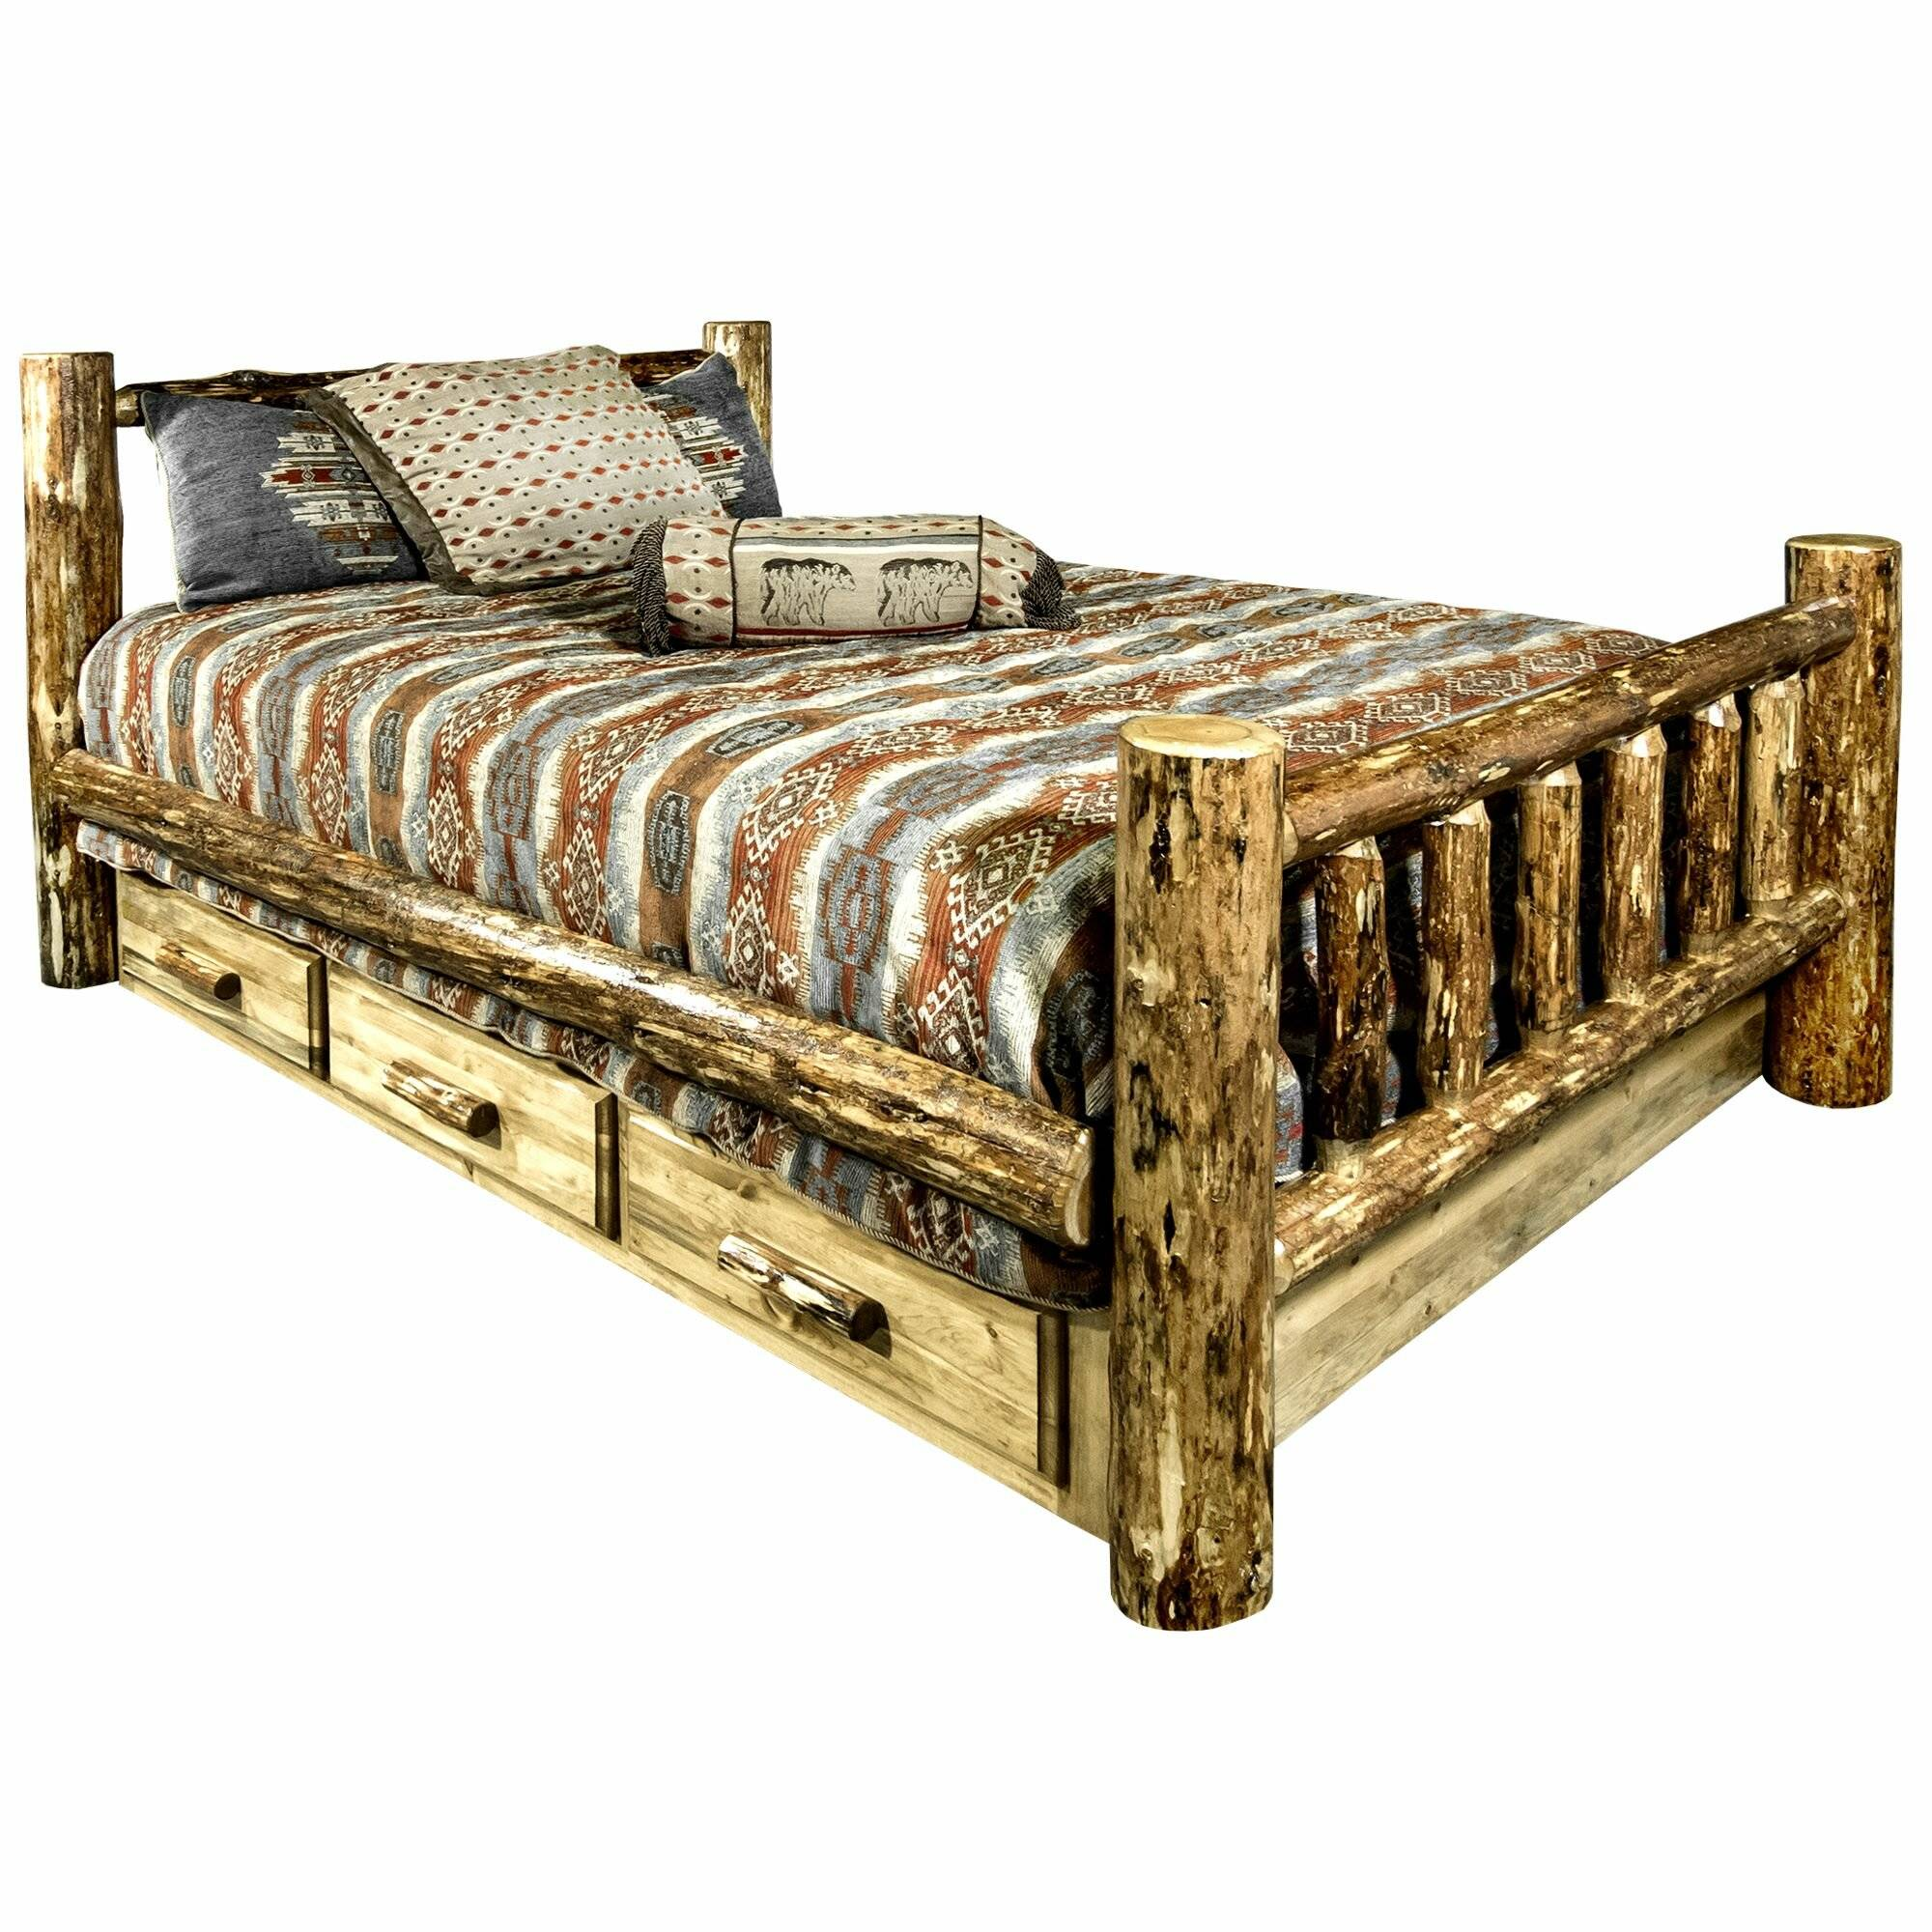 Exceptional Unusual Bed Frames New Tustin solid Wood Storage Standard Bed